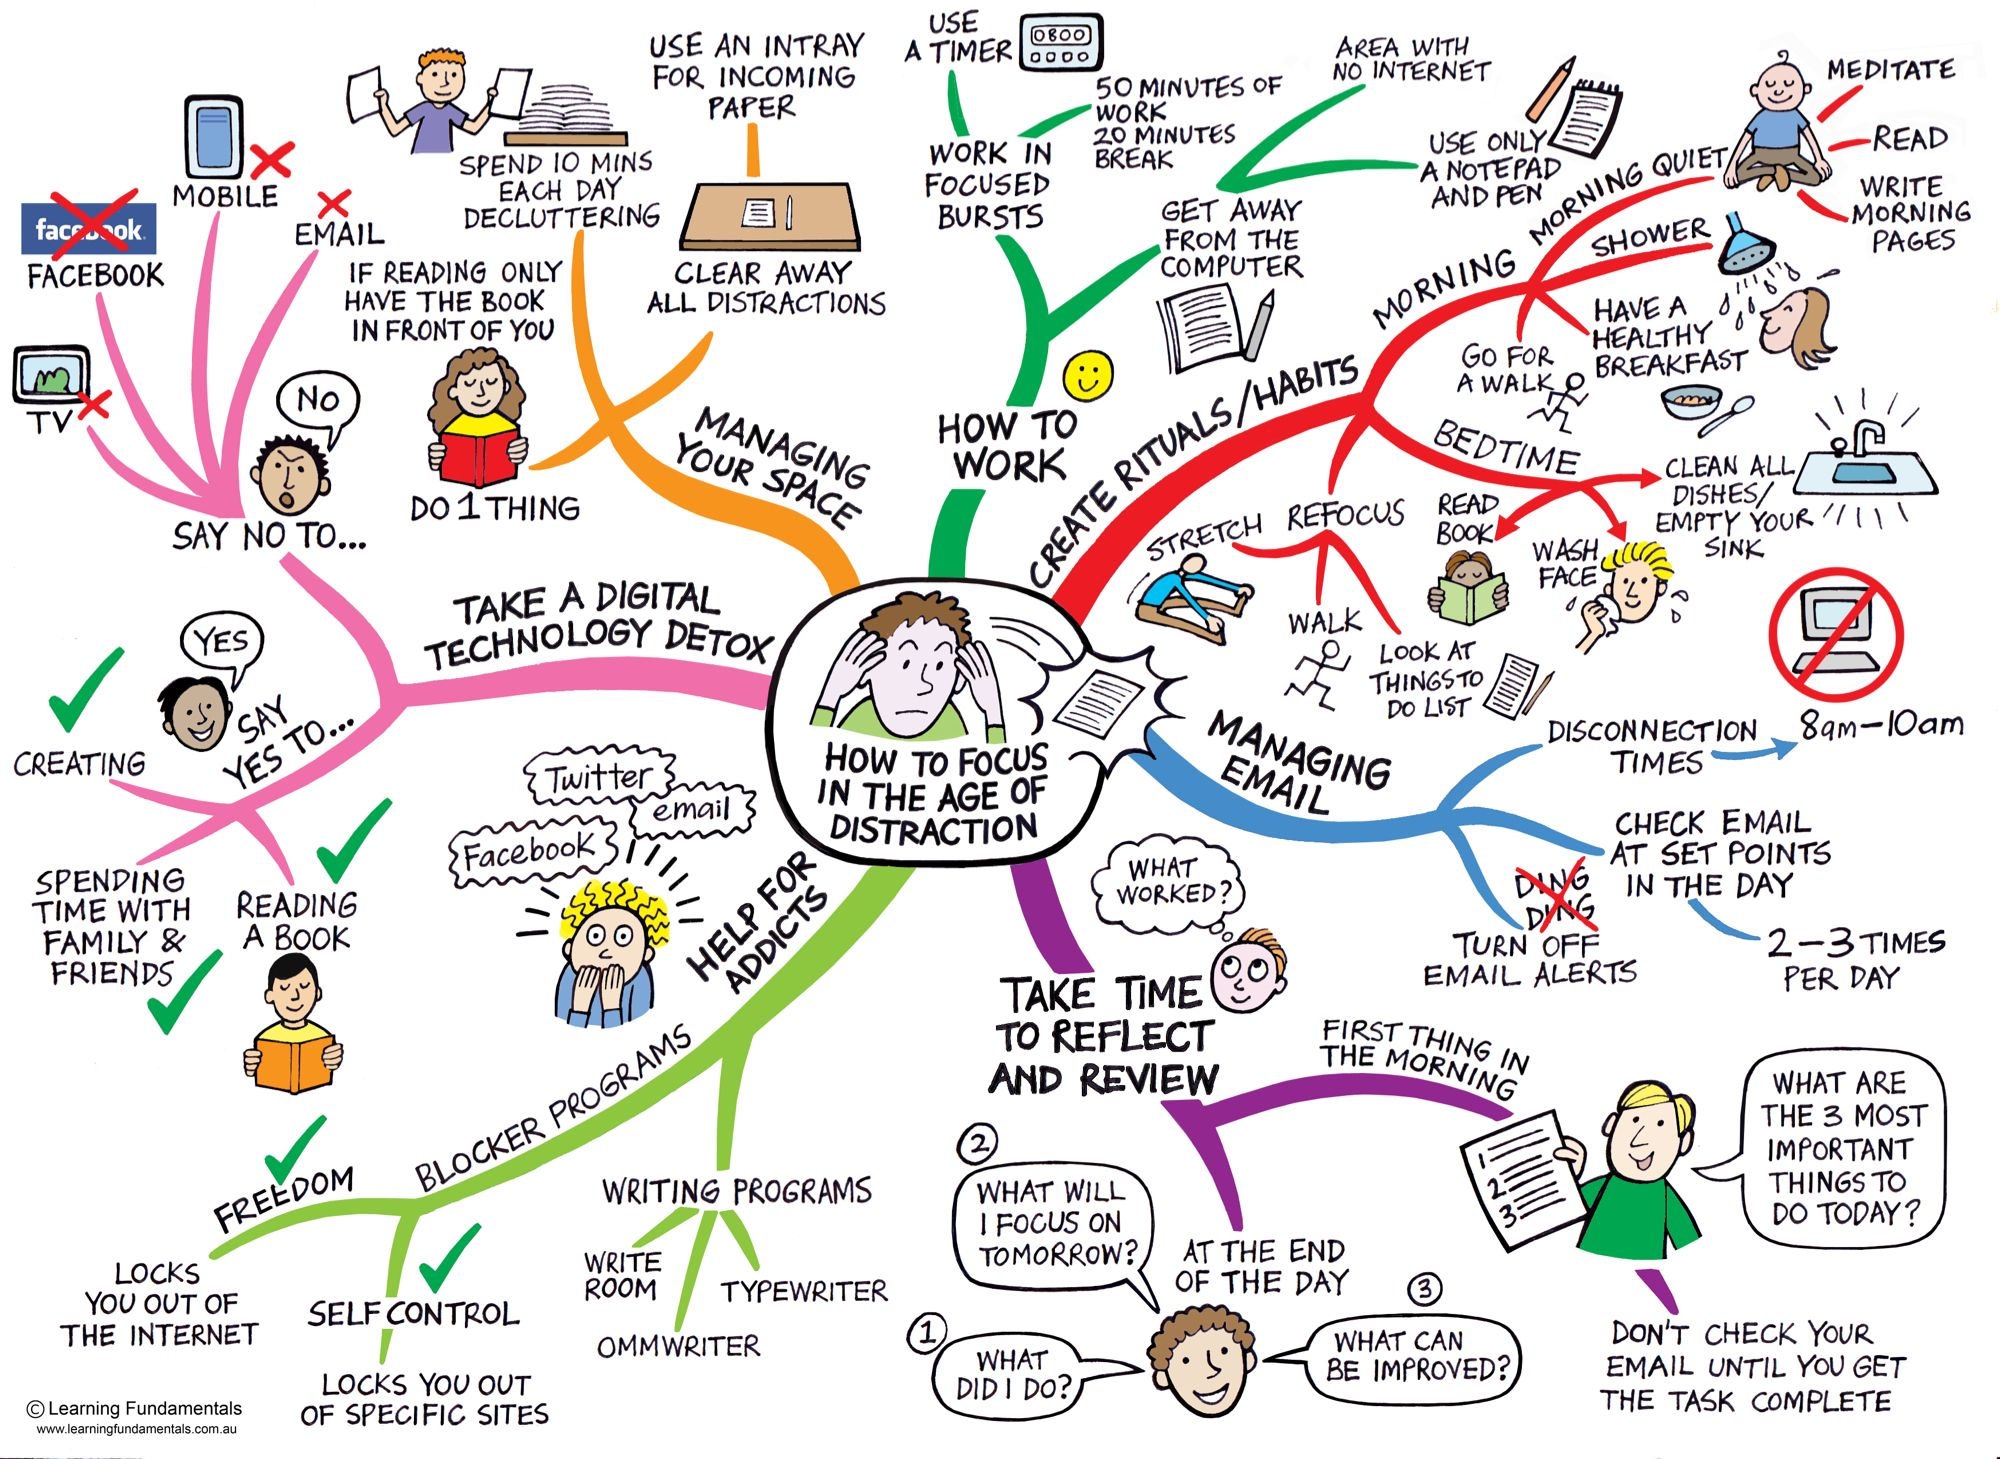 Example of mindmap on how to focus in age of distraction